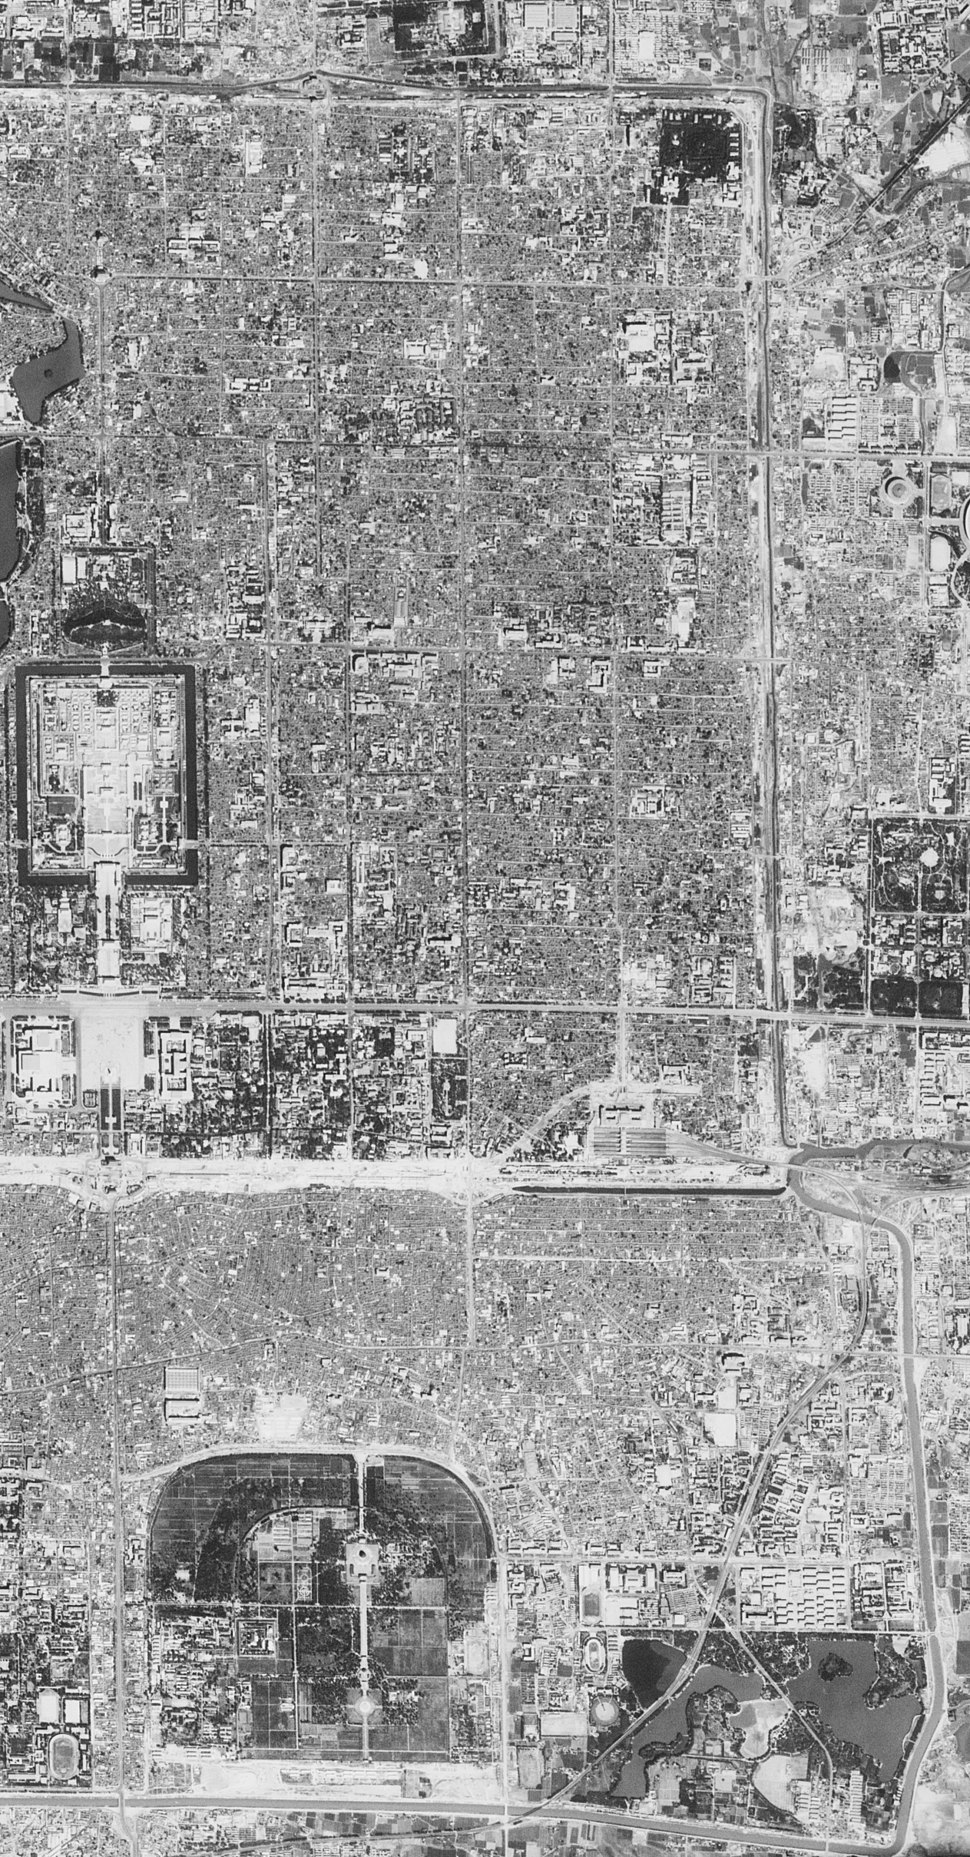 DongCheng District - satellite image (1967-09-20)